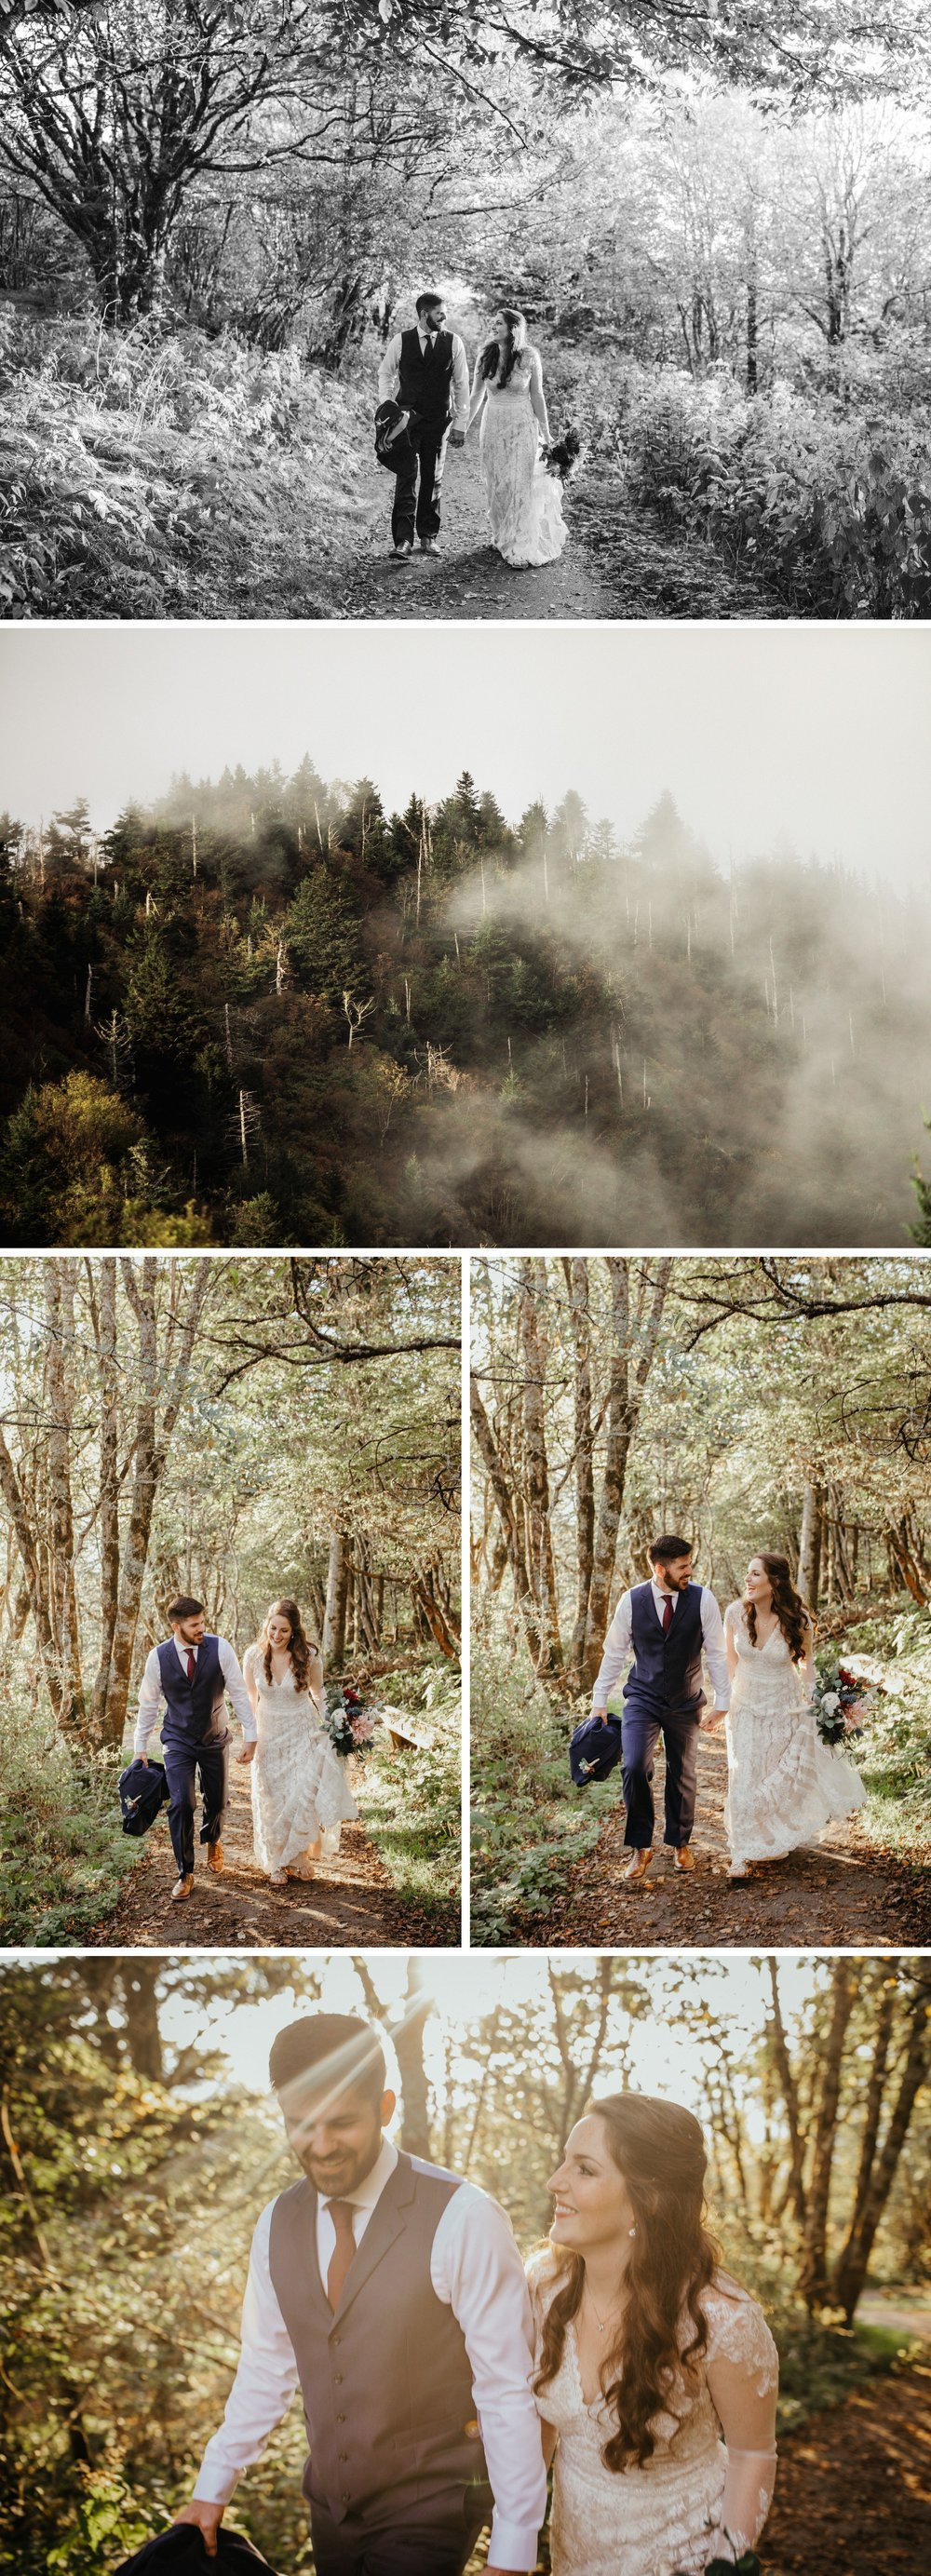 Great Smoky Mountain National Park Elopement- Cole + Rachel- Photographer Shaina DeCiryan-11.20182.jpg